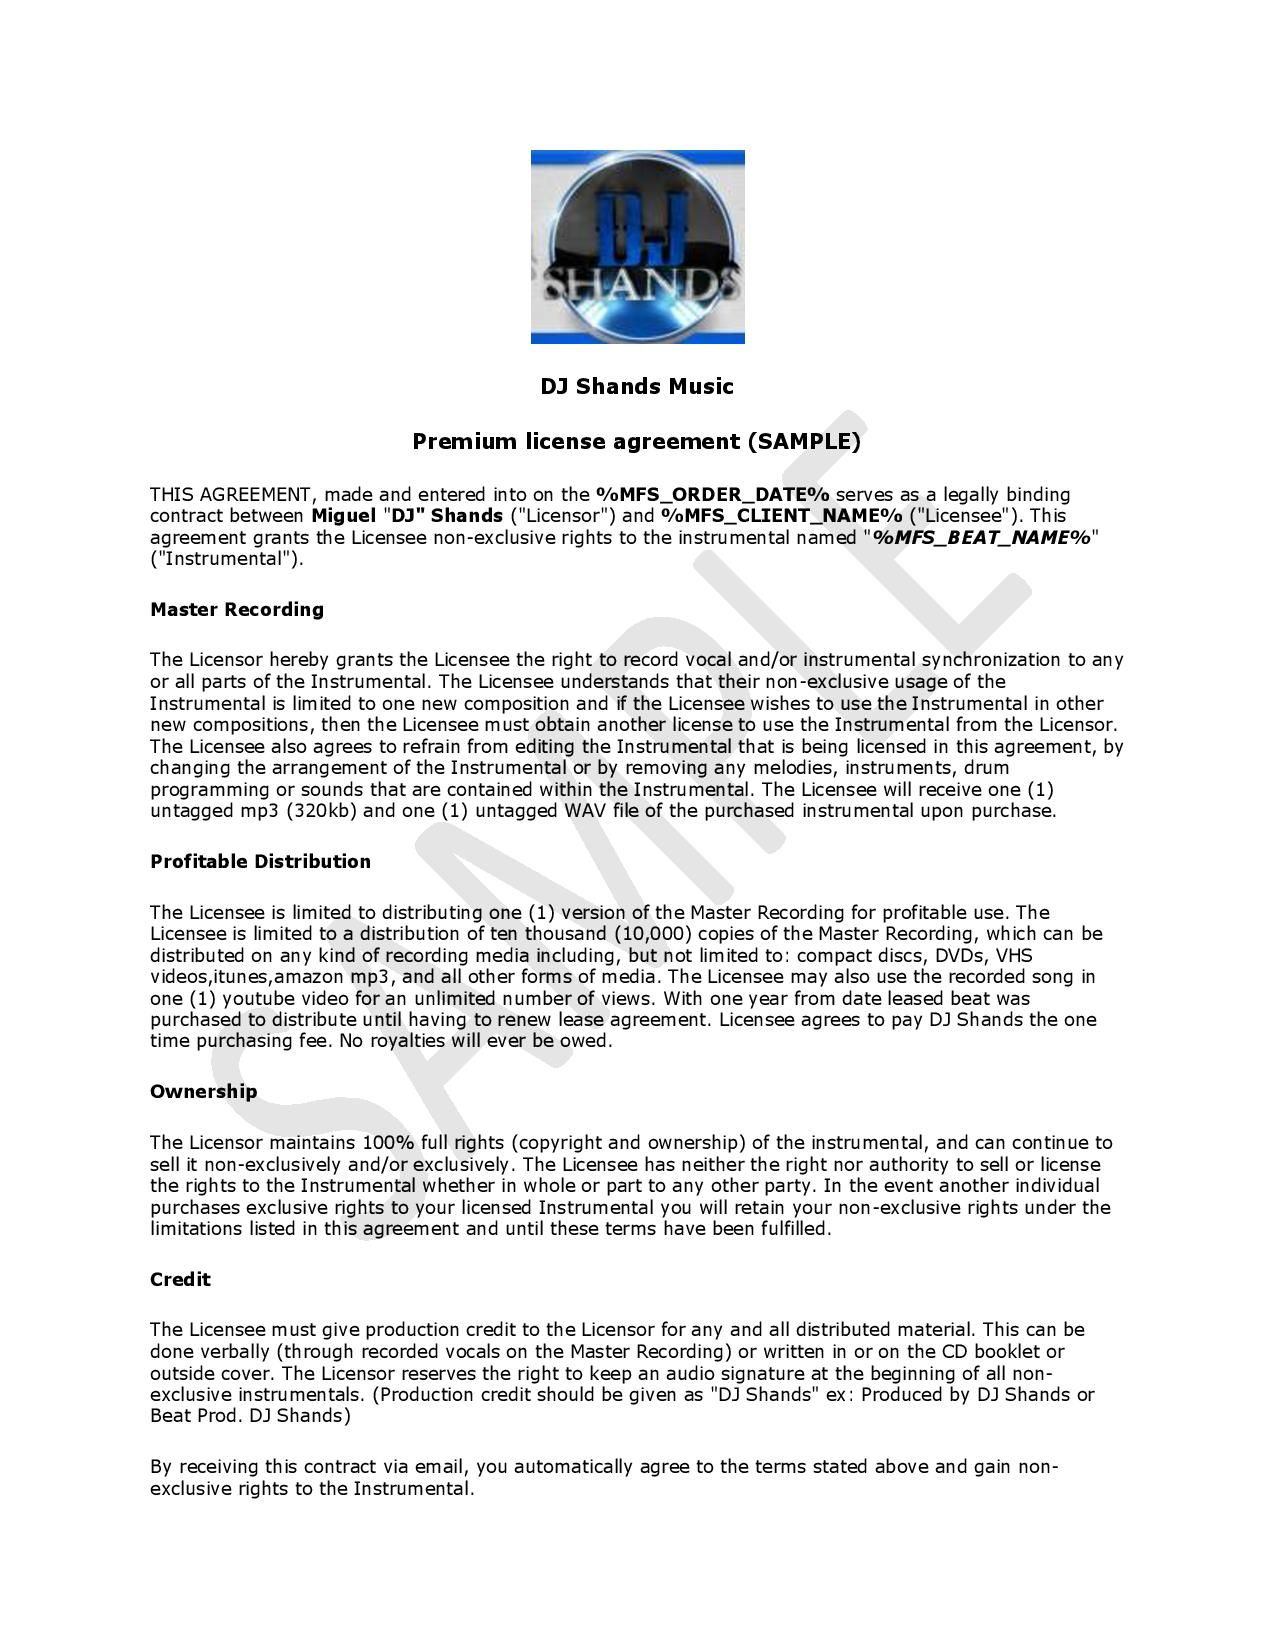 Entertainment Contract Agreement Images  Dj Agreement  Dj